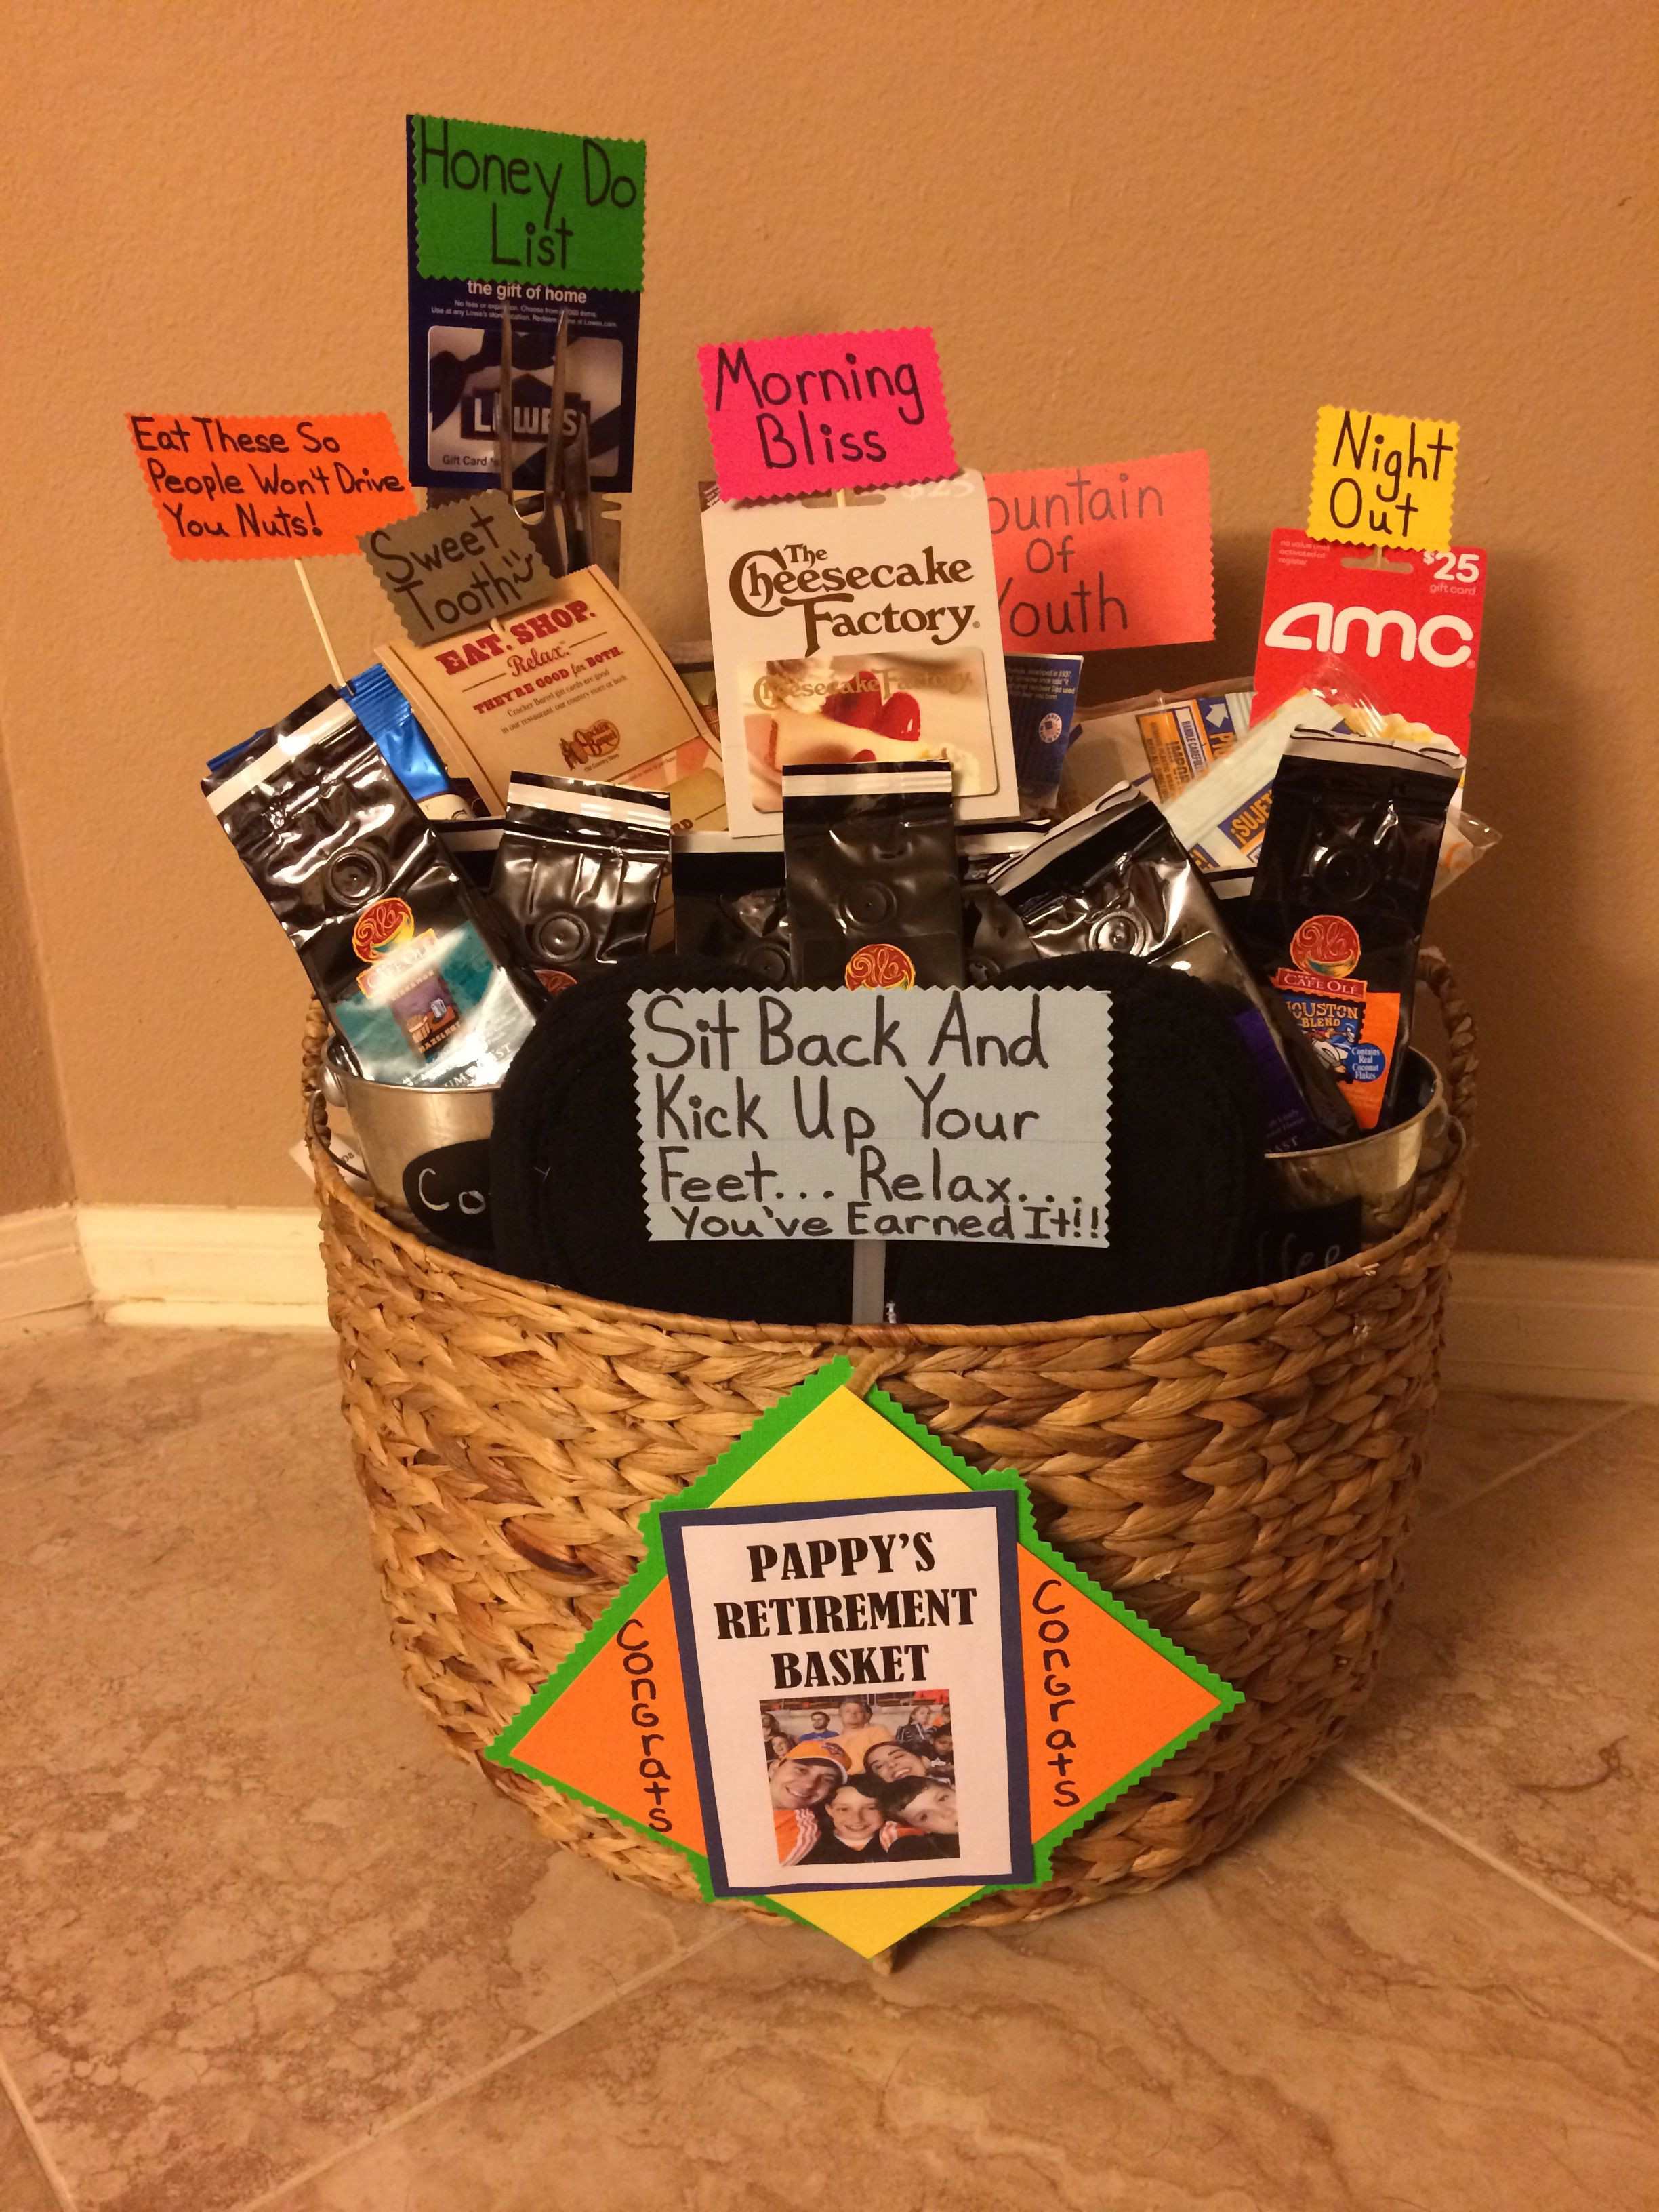 Best ideas about Retirement Gift Ideas . Save or Pin Retirement t basket great ideas Now.